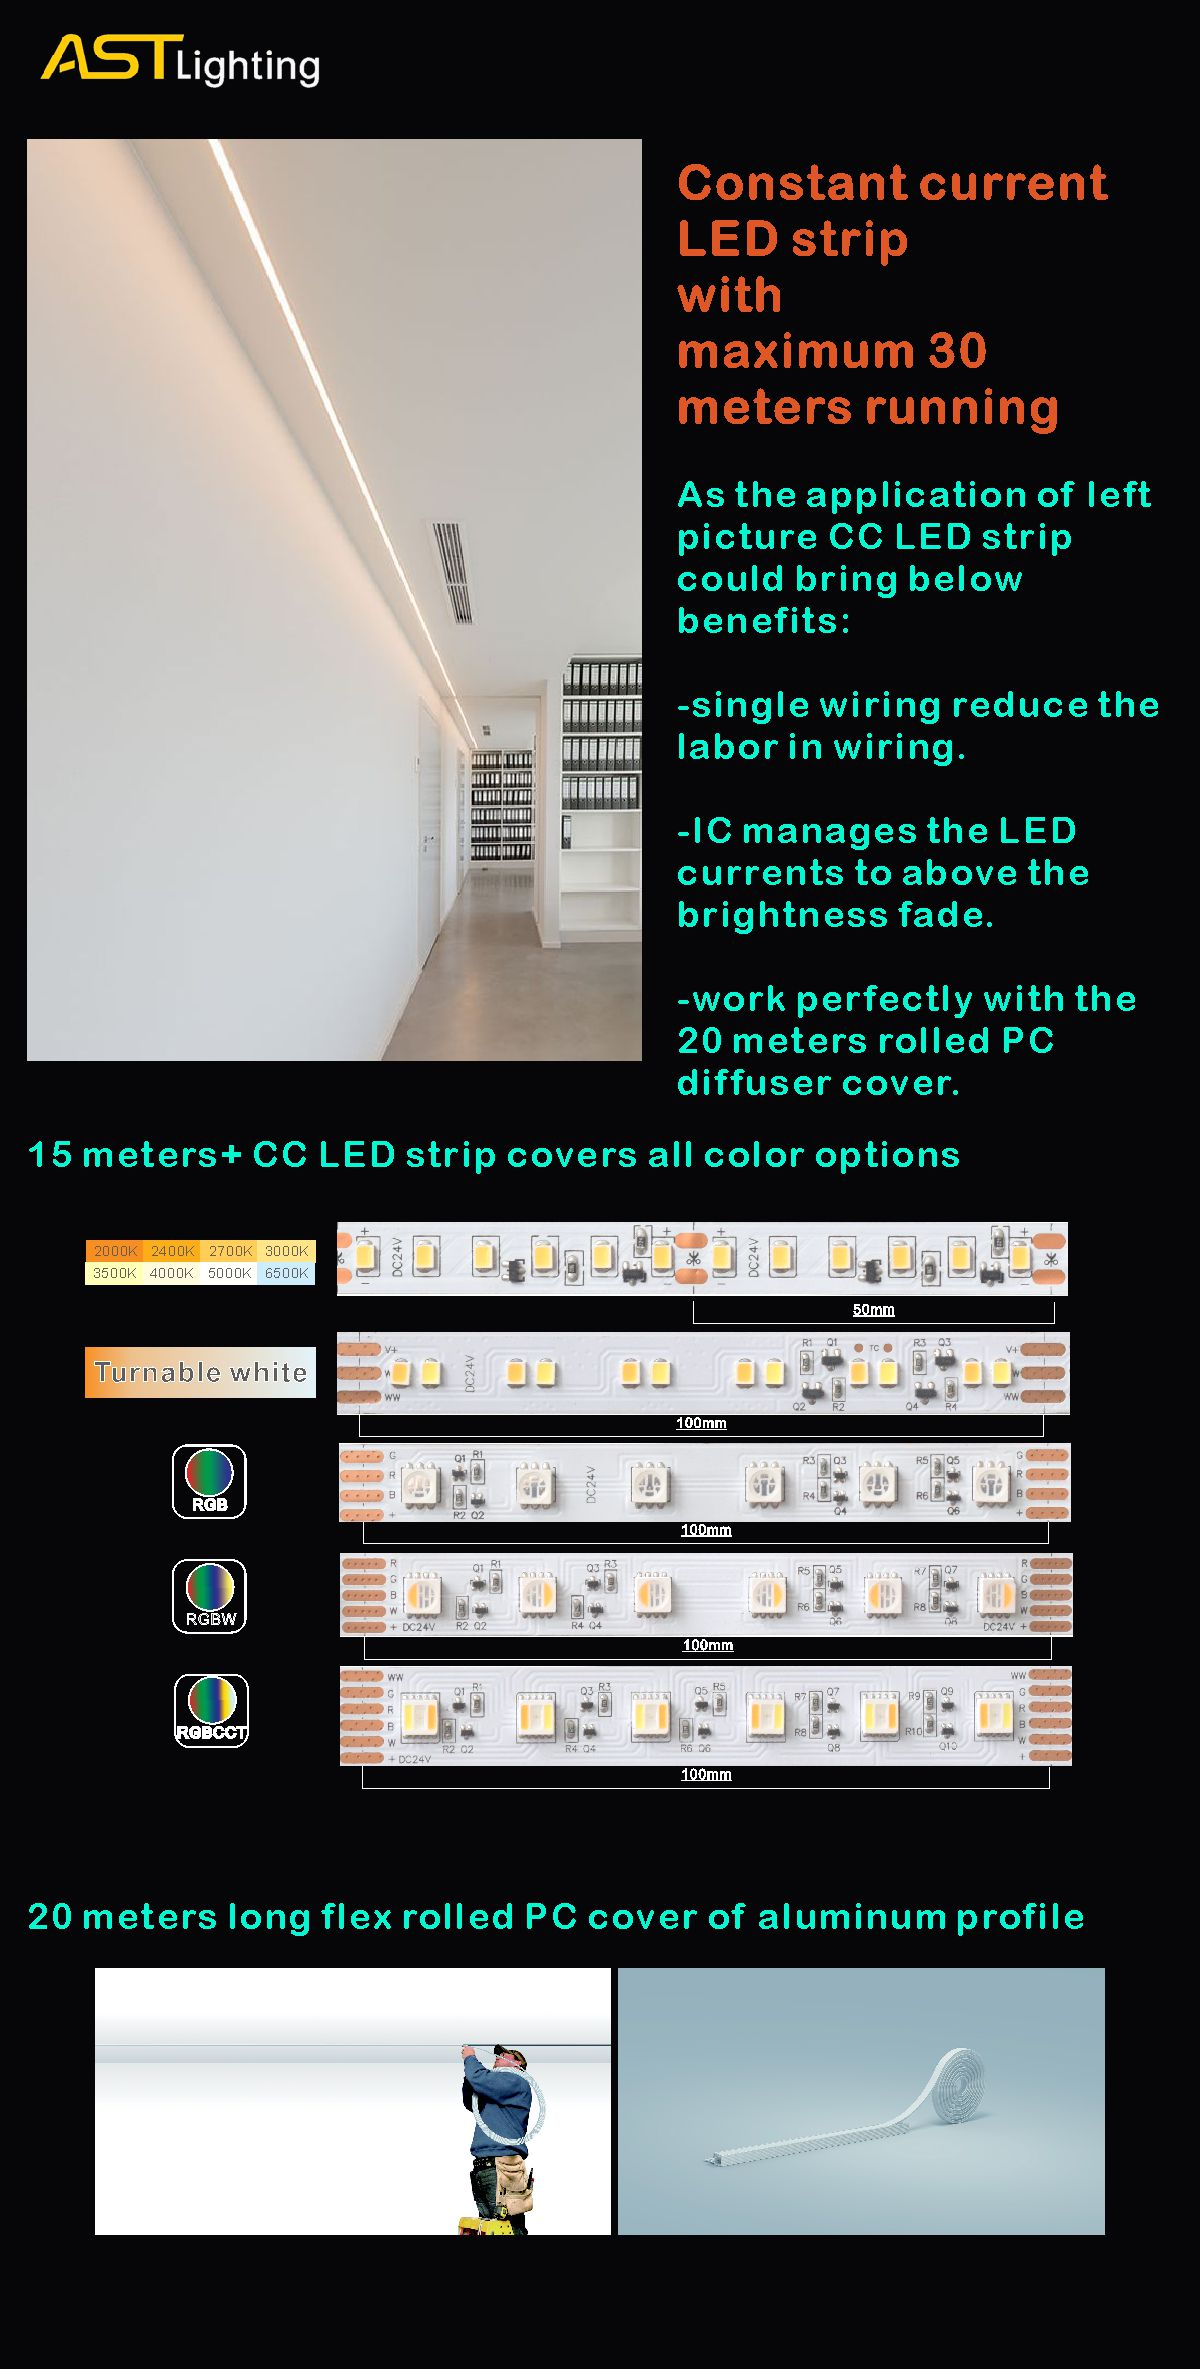 30 meters running constant current LED strip